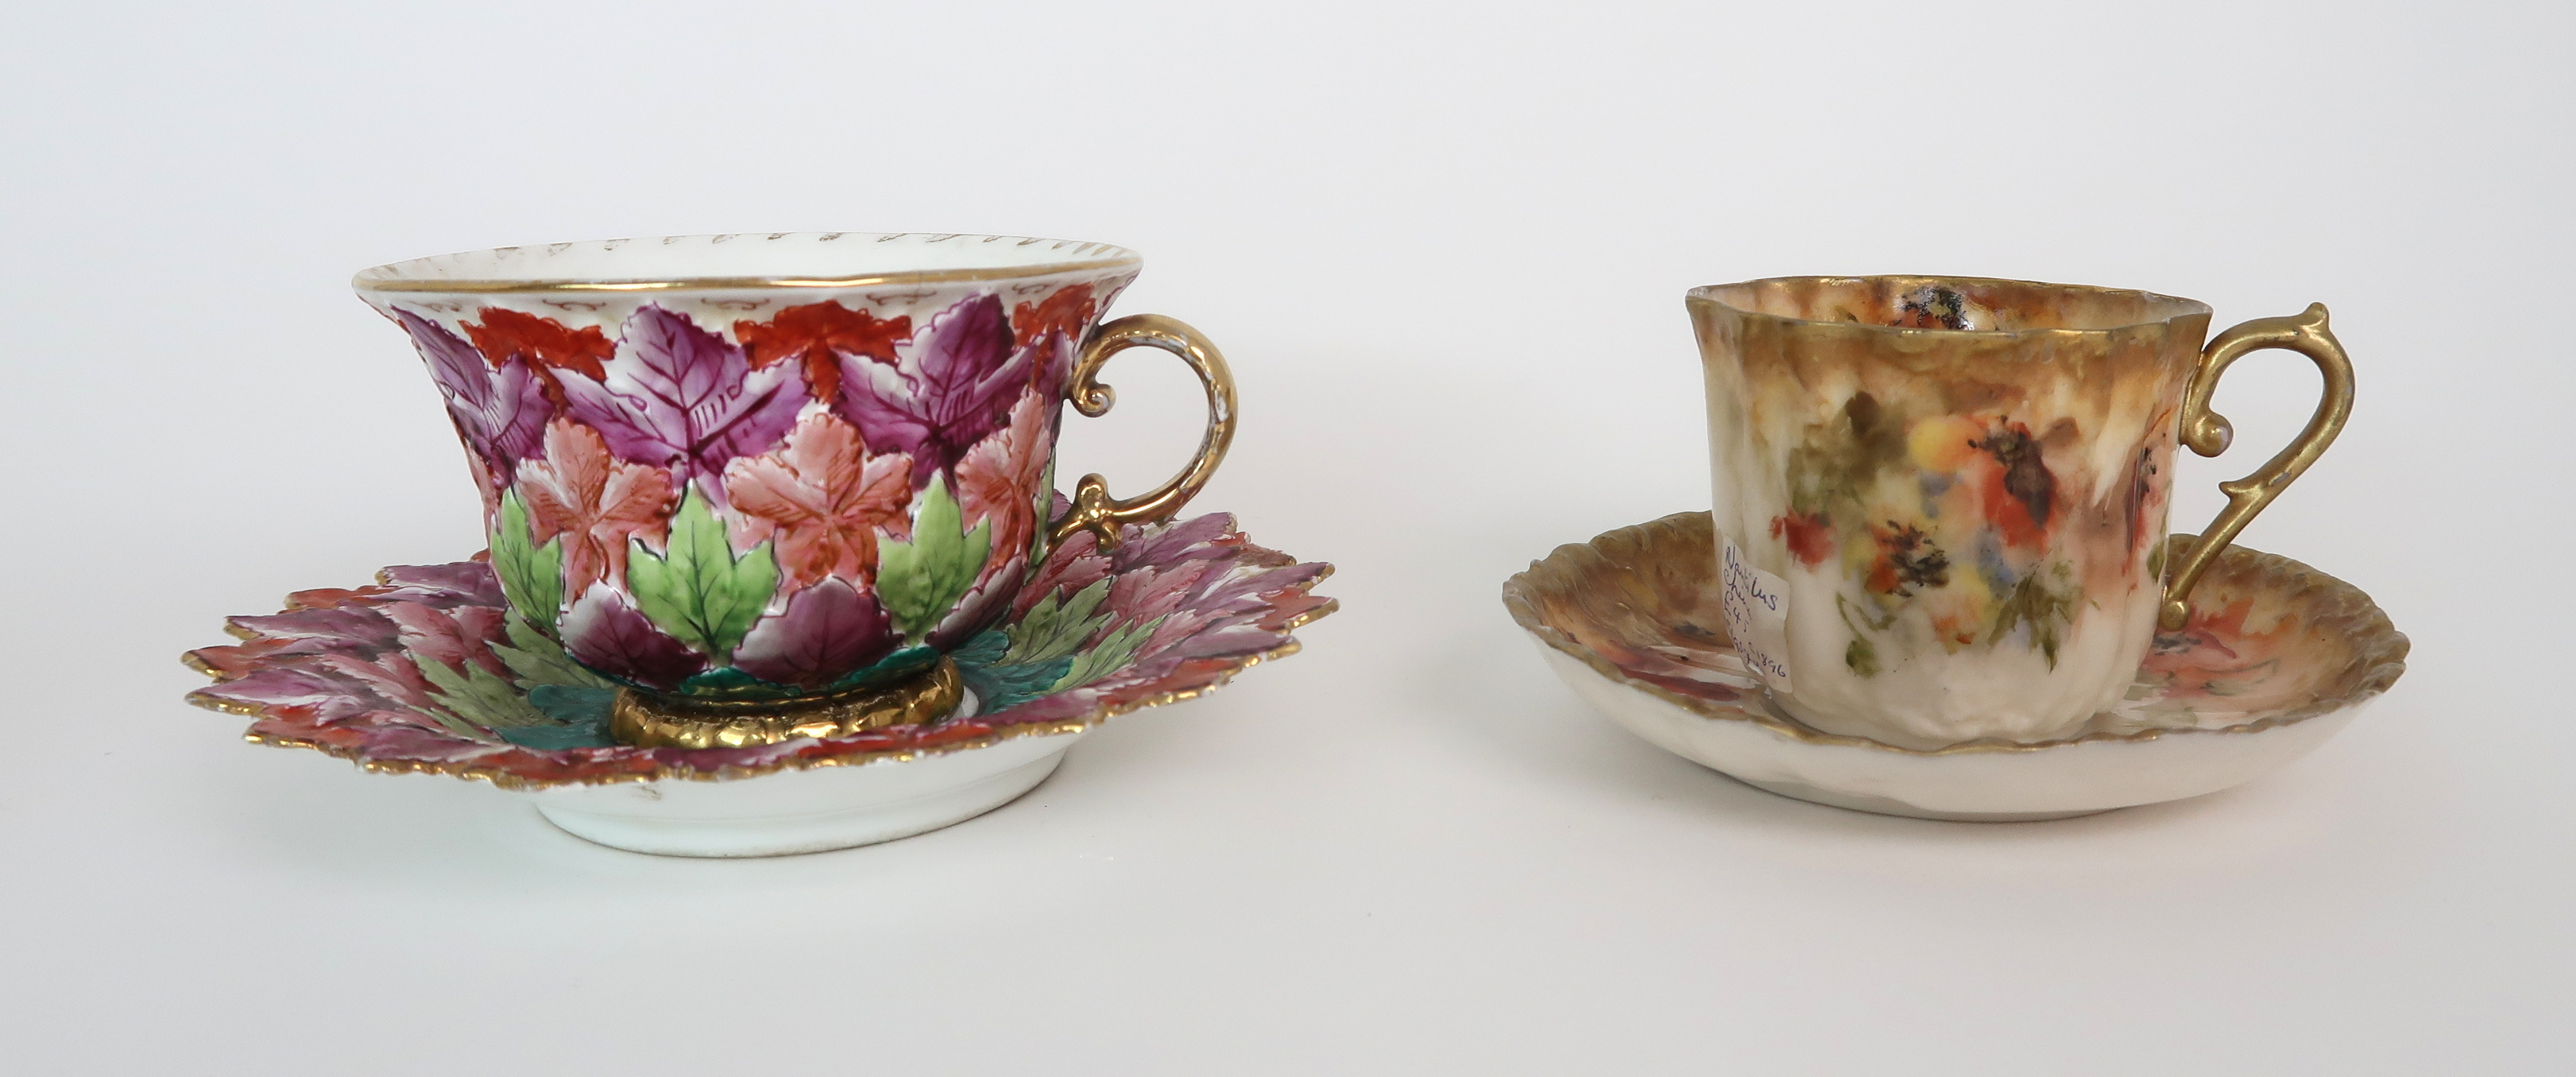 THREE CAPODIMONTE CUPS AND SAUCERS decorated with bacchanalian scenes, a pair of Sevres pots - Image 10 of 16